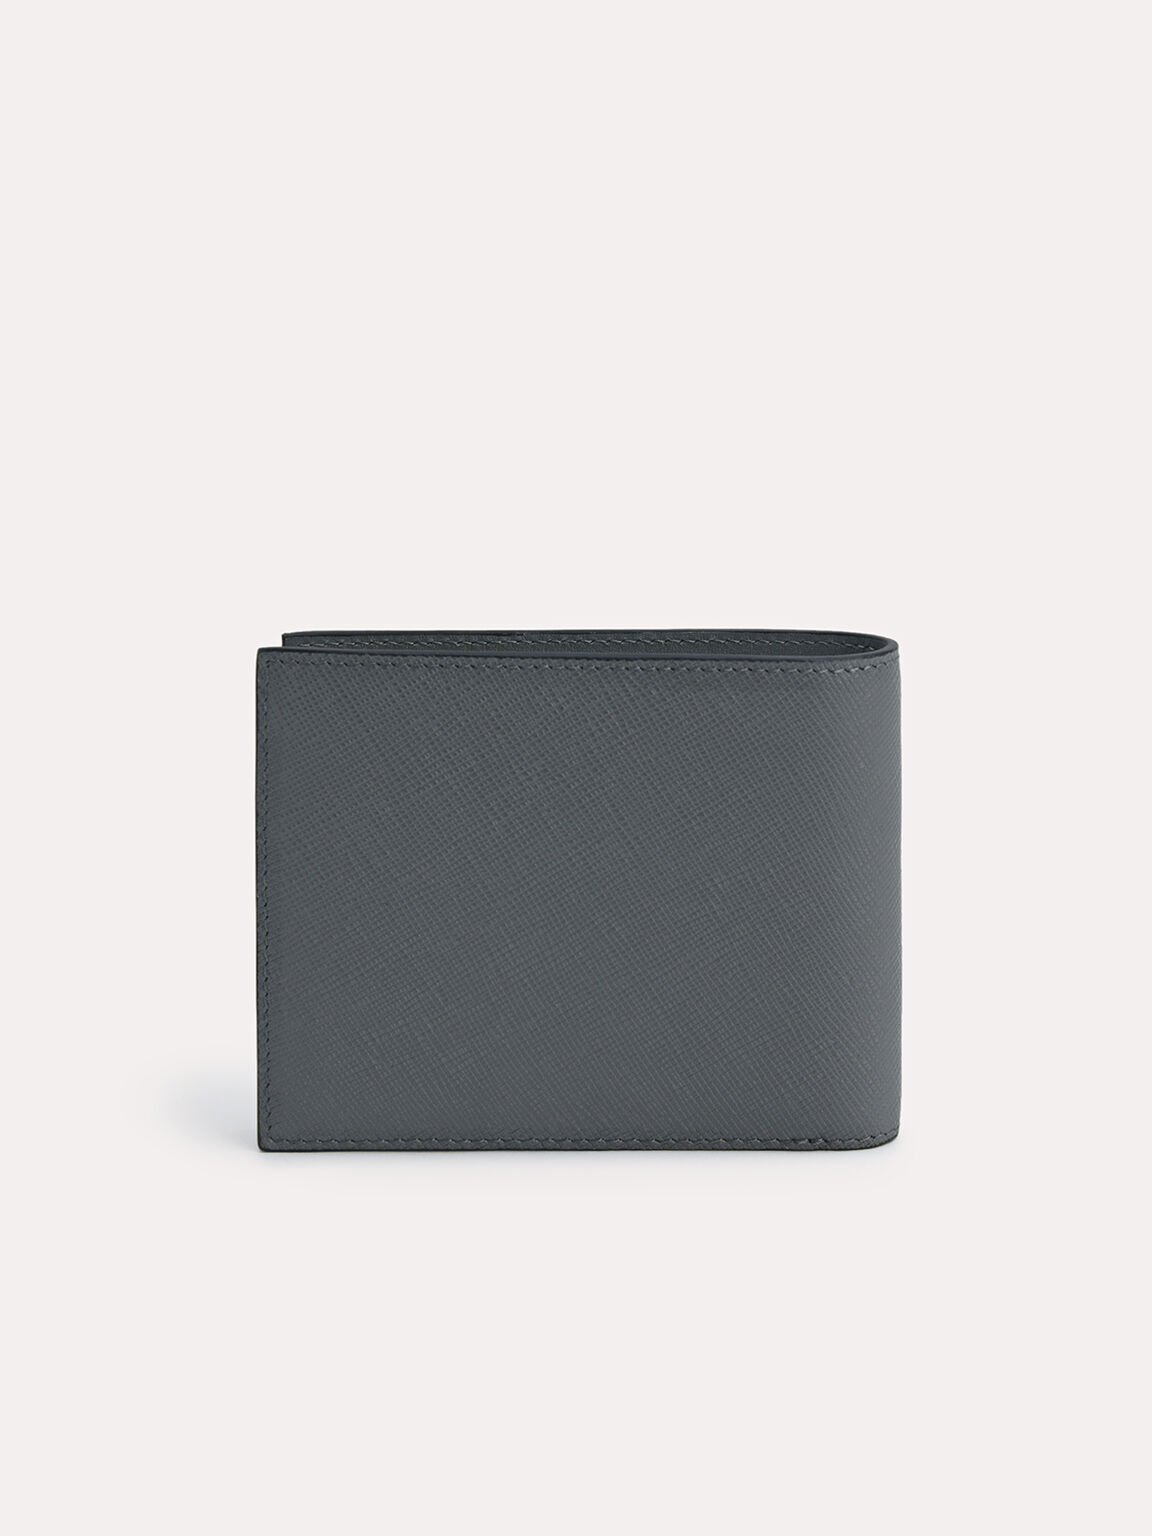 Leather Bi-Fold Wallet with Insert, Dark Grey, hi-res